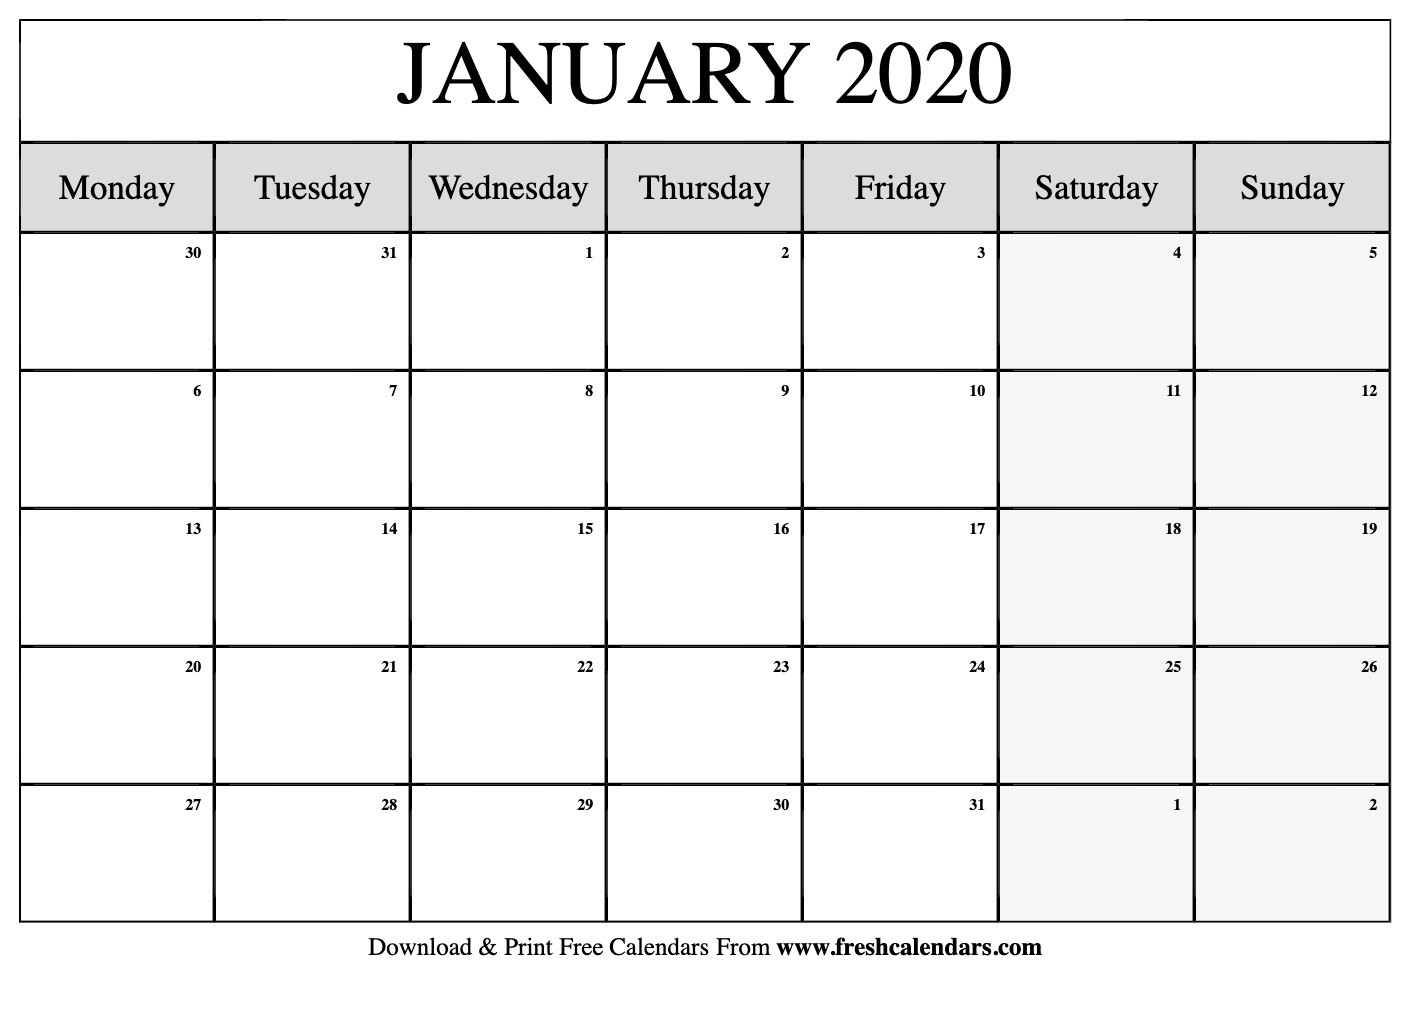 Free Printable January 2020 Calendar-2020 Monday To Friday Schedule Template